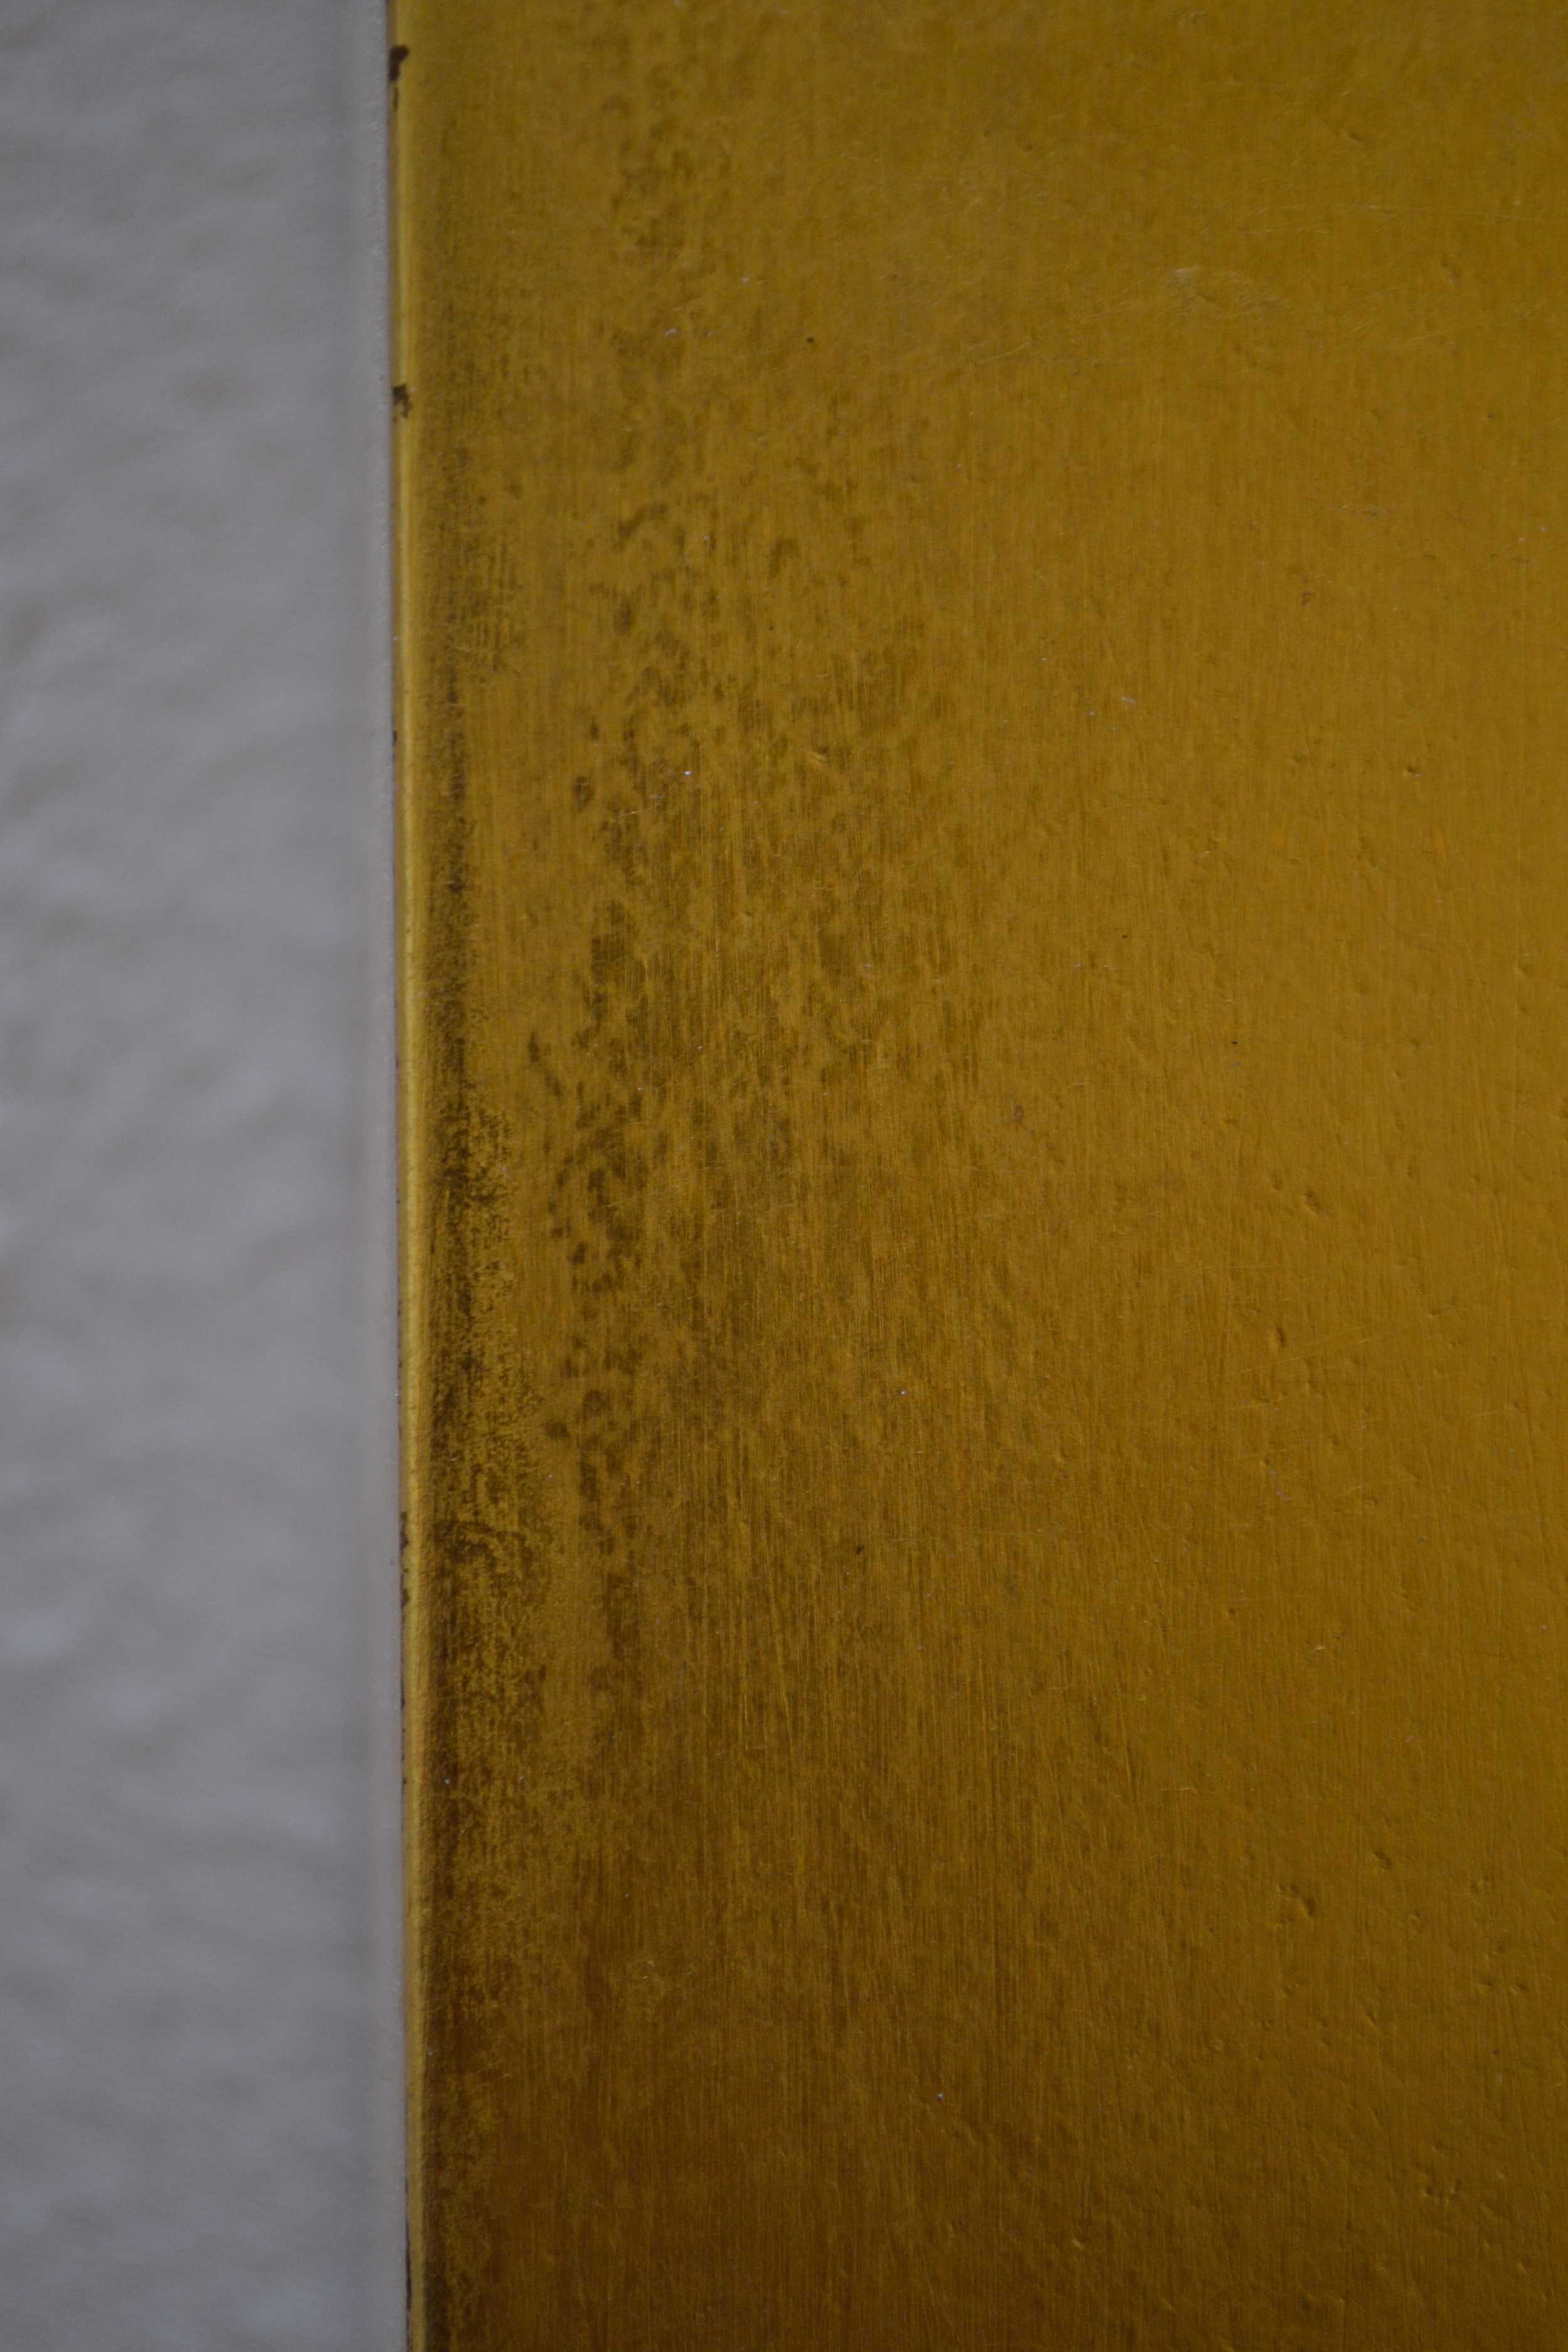 Gilding detail, edge of gilded panel. Dark areas are degraded varnish.